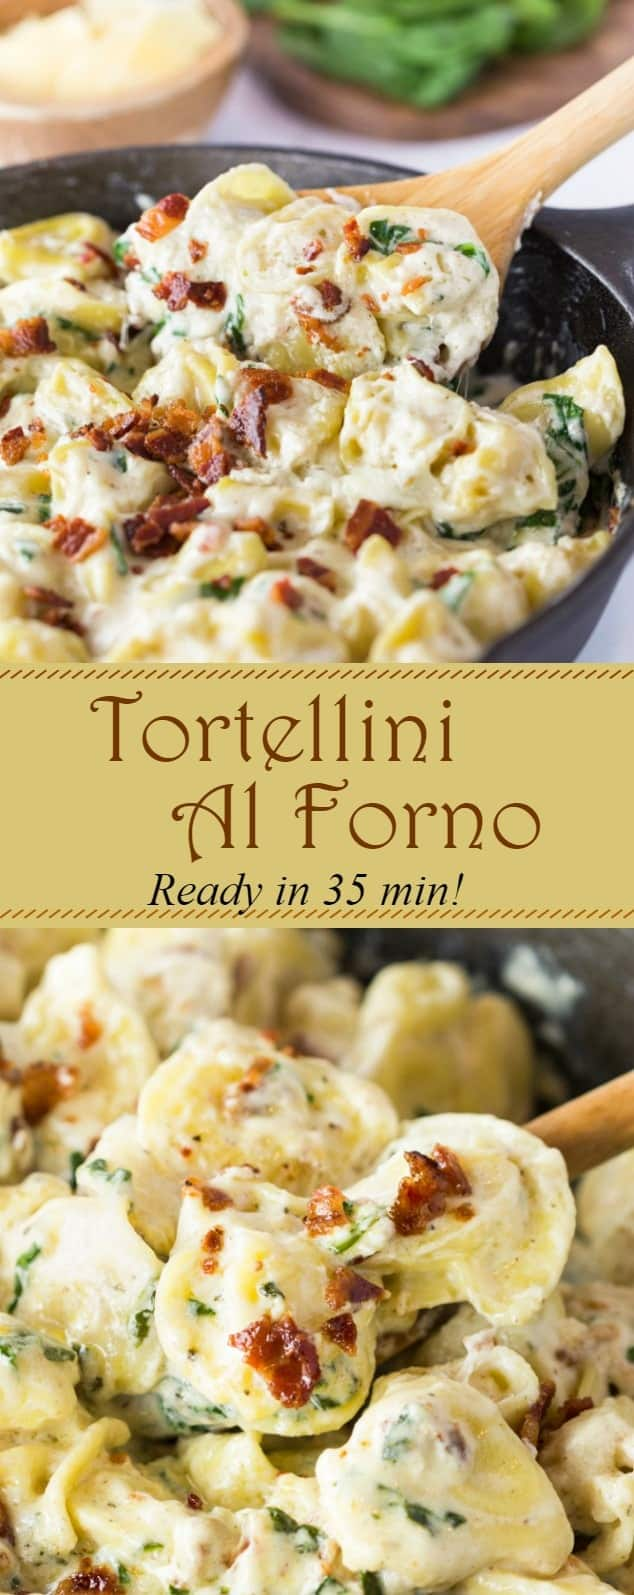 This Tortellini Al Forno features stuffed tortellini tossed in a rich and creamy garlic cheese sauce and topped with crumbled bacon. | The Cozy Cook | #Tortellini #Pasta #OliveGarden #AlForno #Dinner, #Cheese #Parmesan #Bacon #Dinner #ComfortFood #CreamSauce